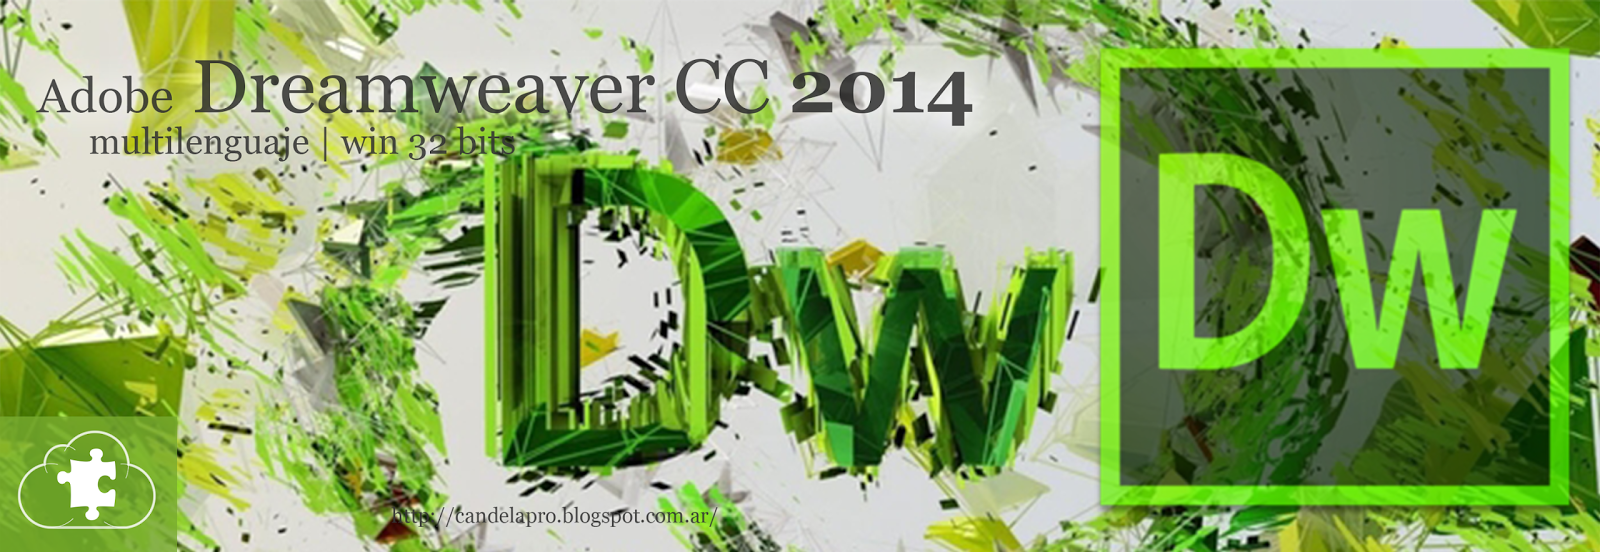 Adobe Dreamweaver CC 2014 - multilenguaje